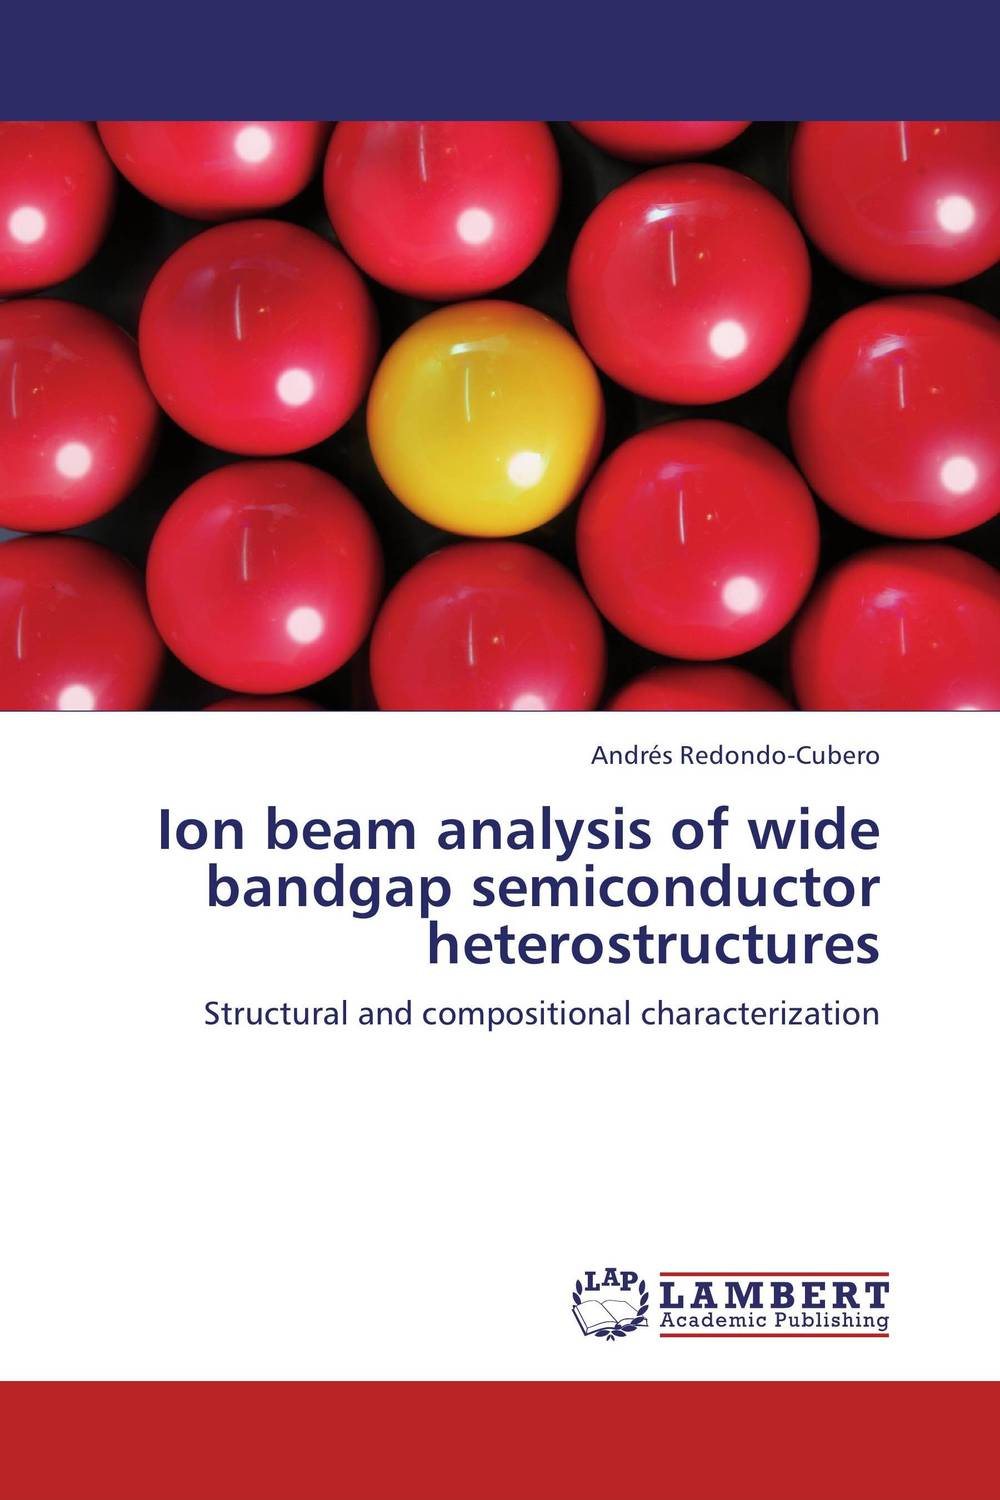 Ion beam analysis of wide bandgap semiconductor heterostructures synthesis and characterization of nc ge using ion beam techniques